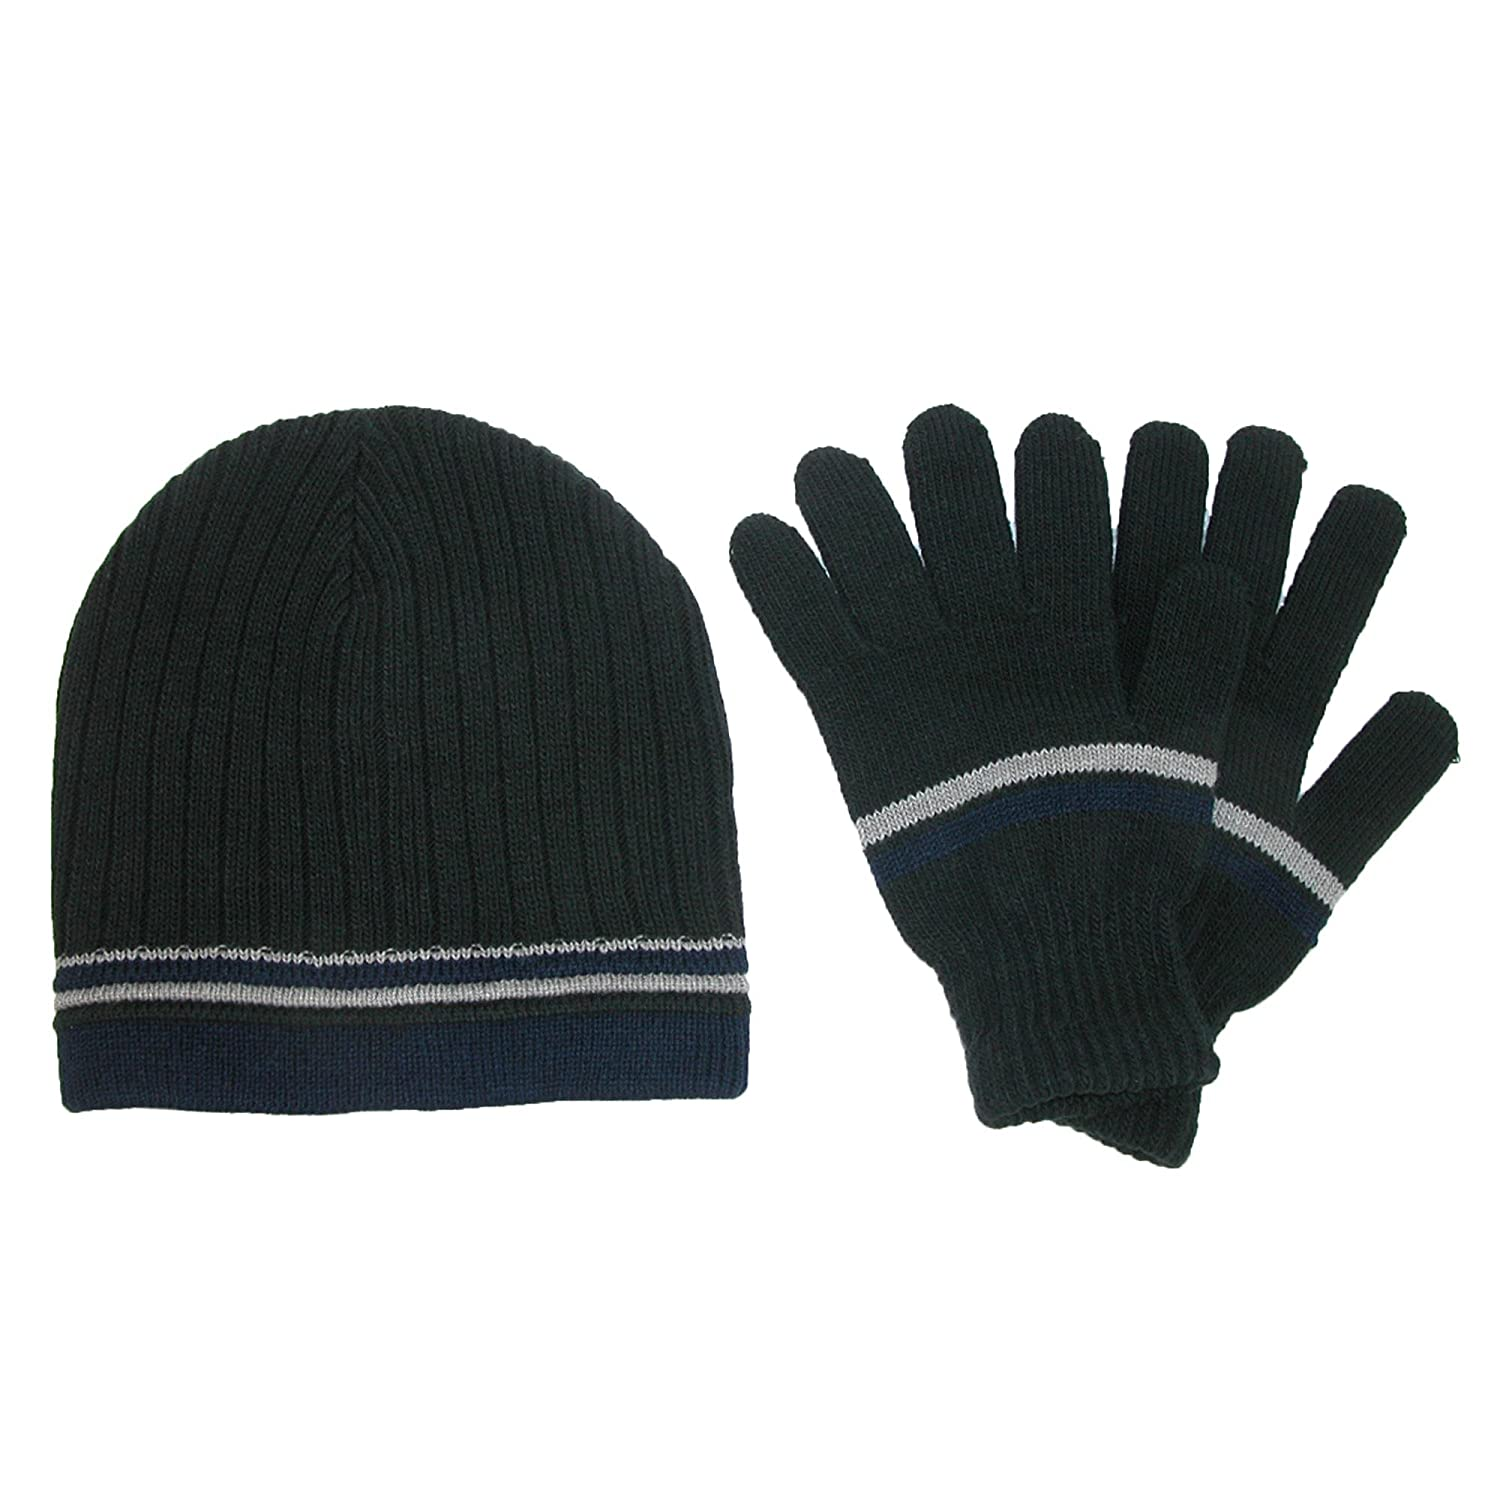 4cdf6ab4337 CTM Men s Knit Striped Beanie and Gloves Winter Set Black RG-K2213 ...